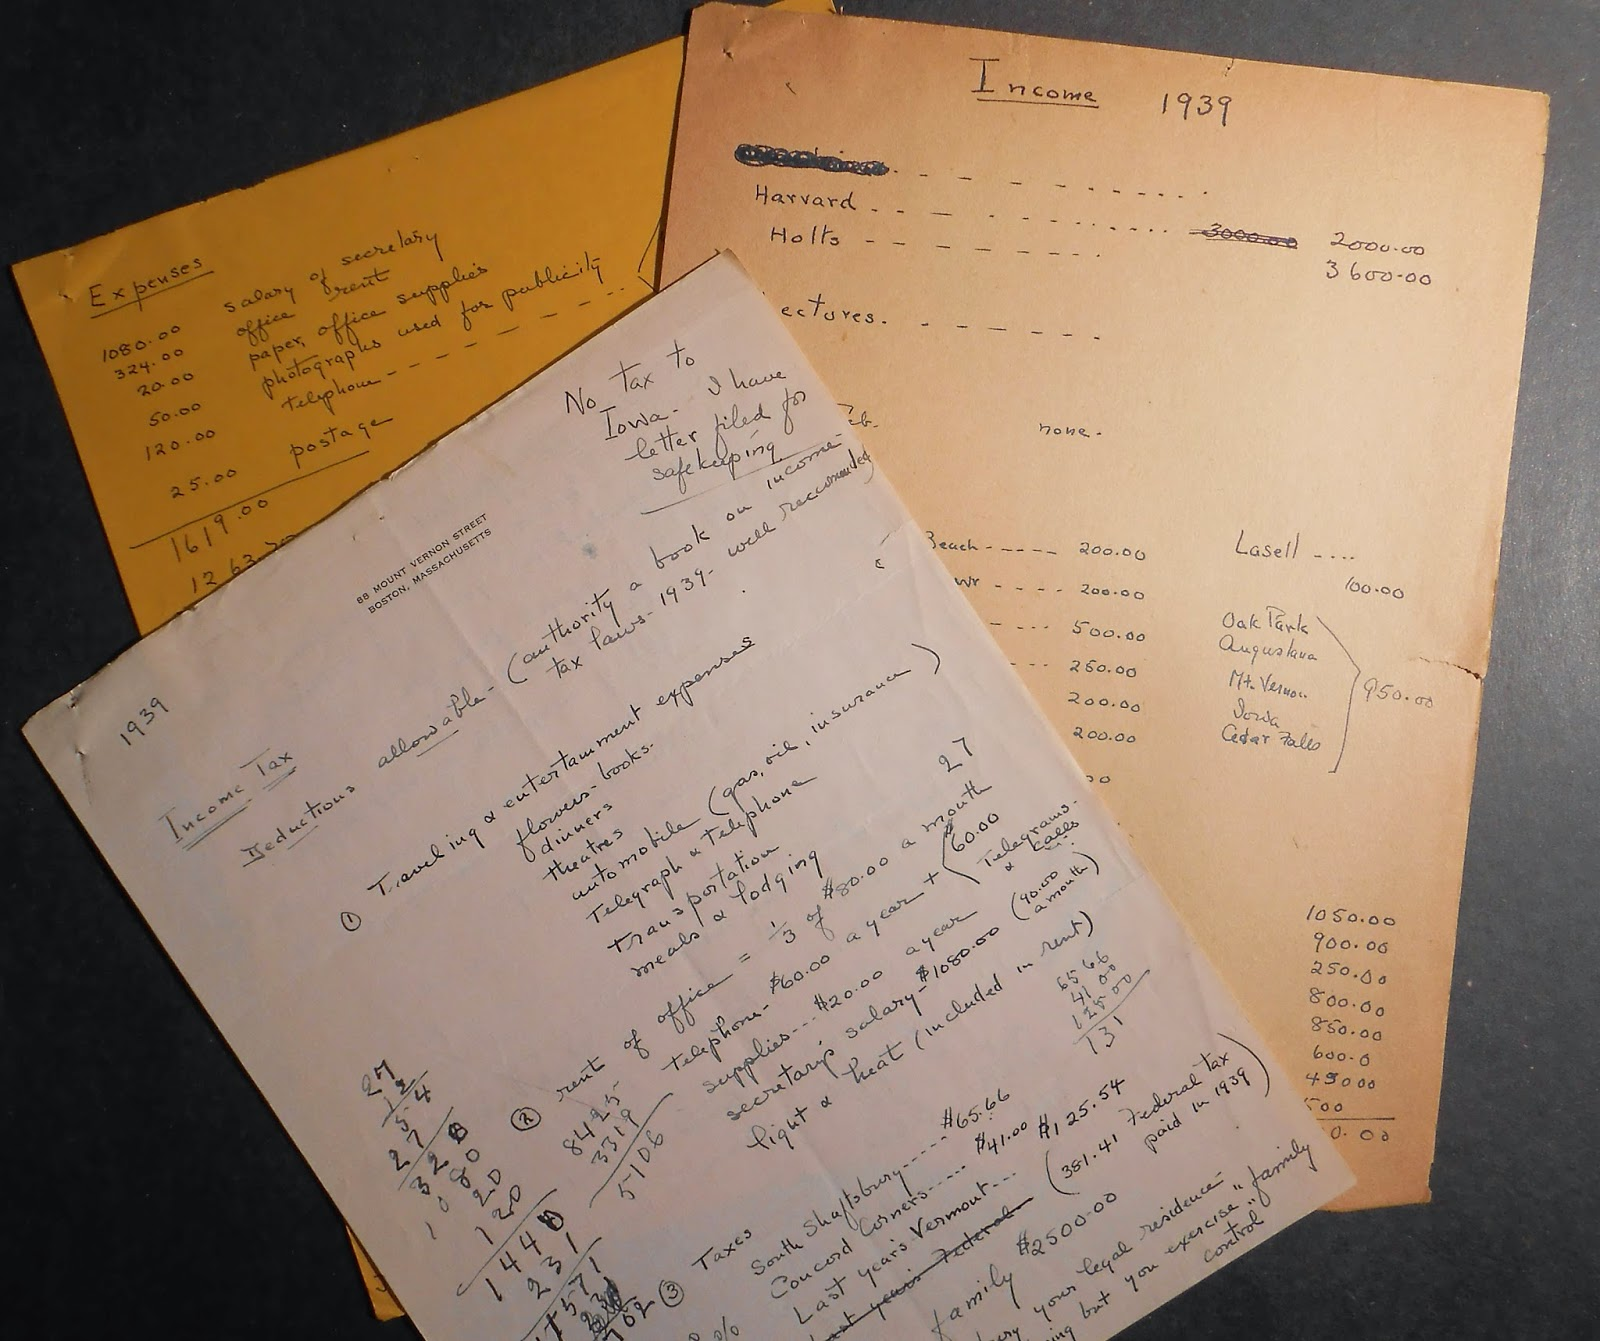 A pile of handwritten papers on financial matters.